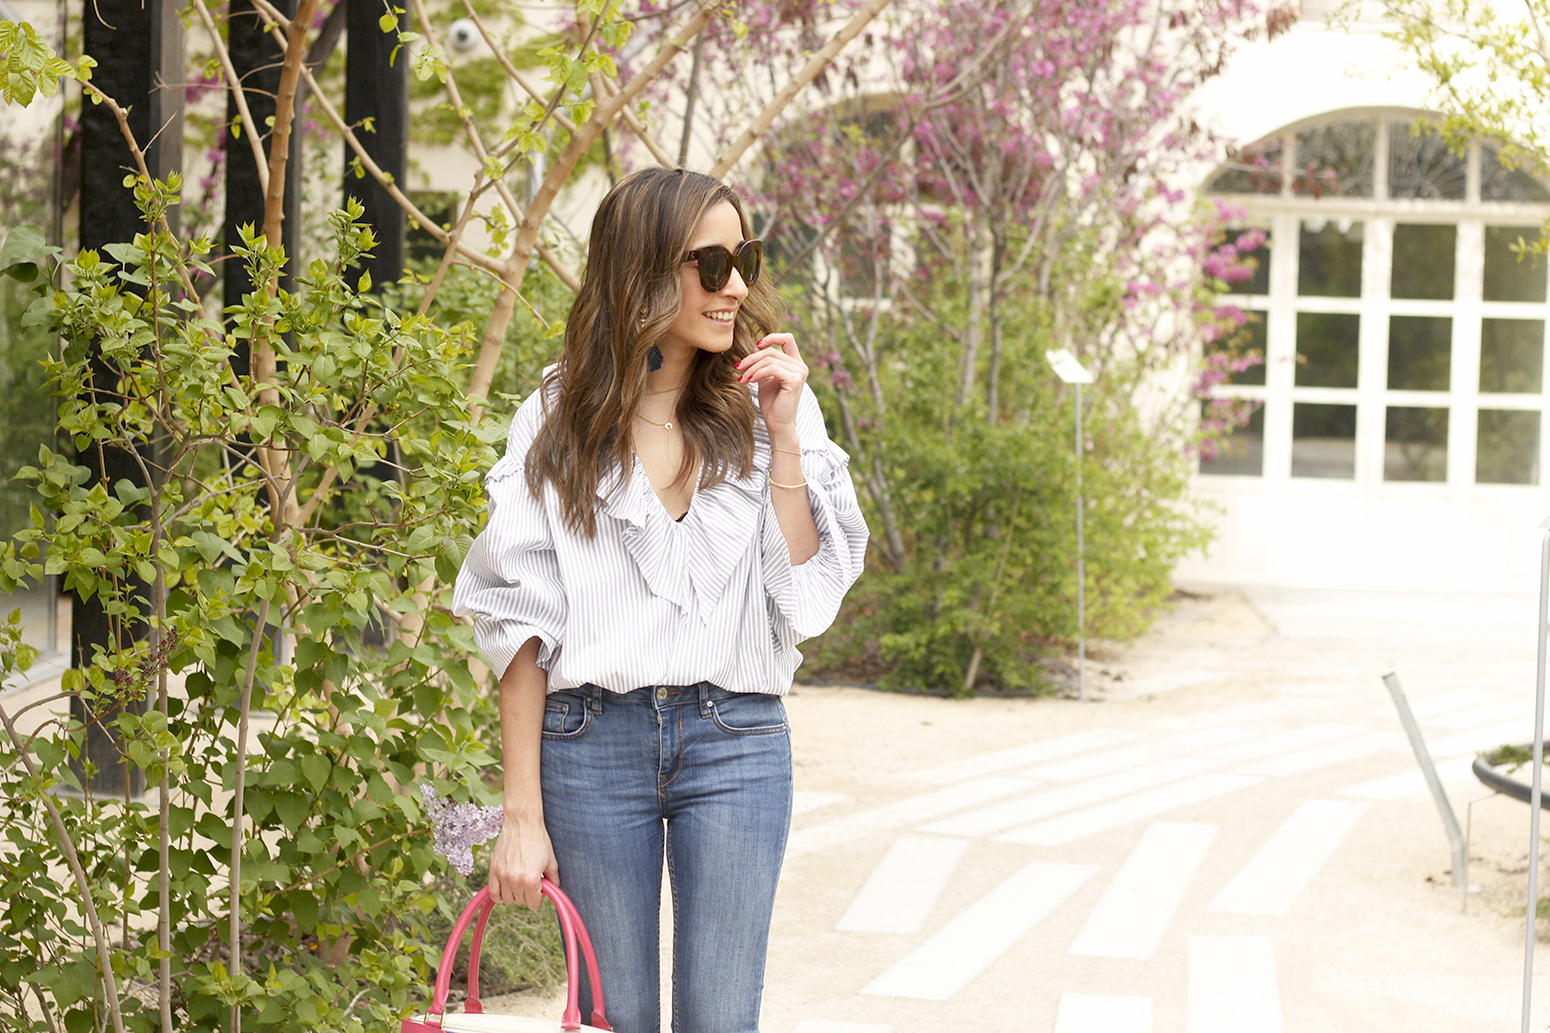 Ruffled striped shirt jeans céline sunnies sandals pamapamar bag accessories spring outfit style fashion12